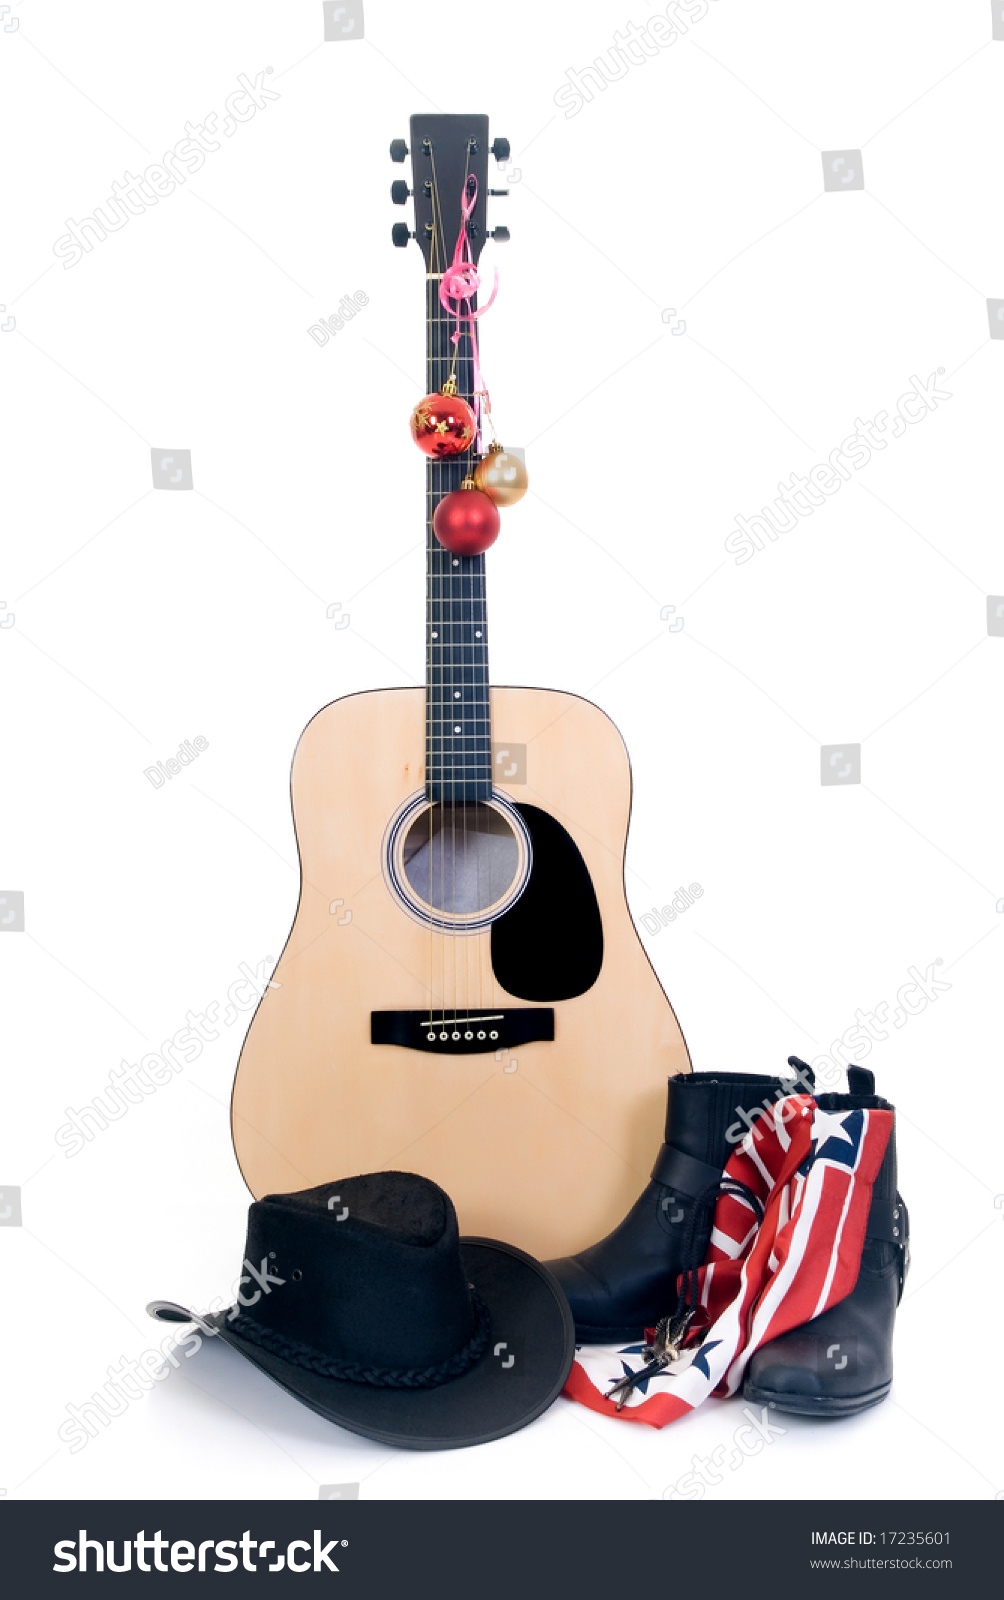 Buy Boots cowboy and hat and guitar photo picture trends